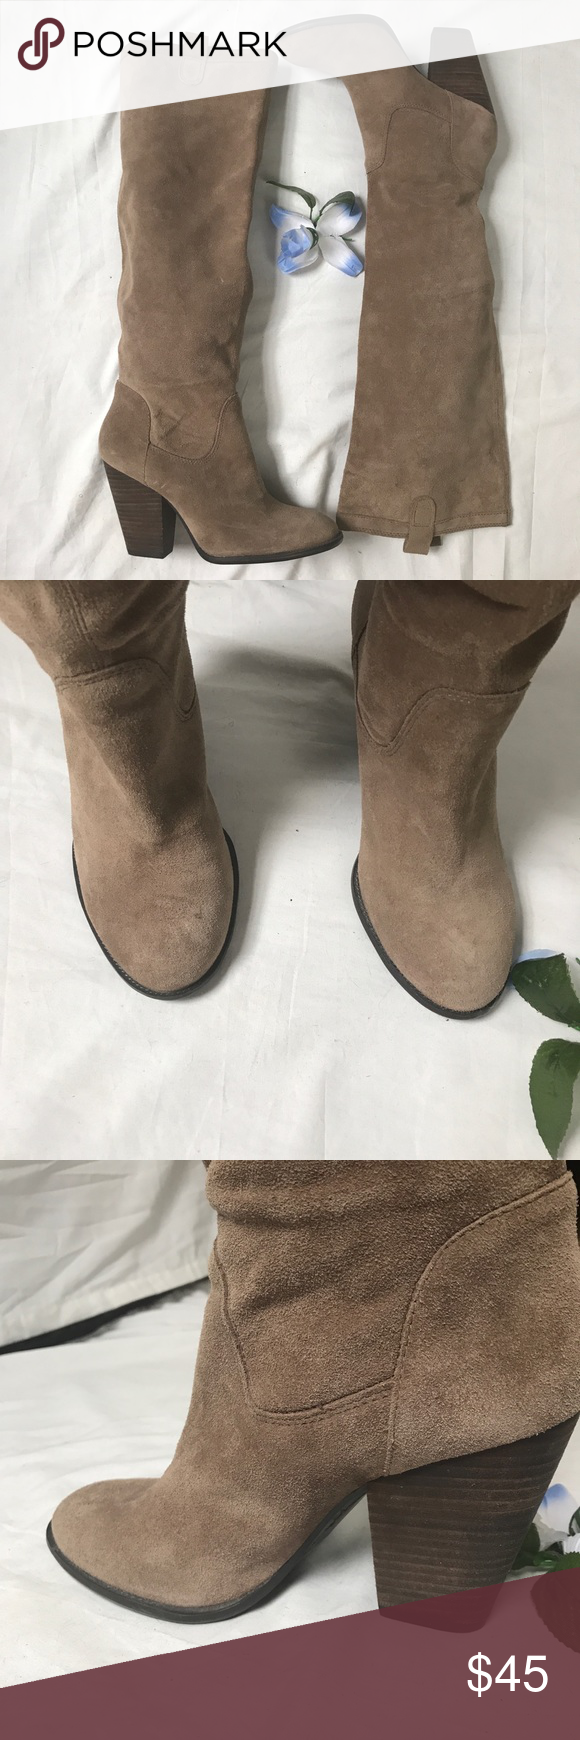 VINCE CAMUTO Leather Upper. Tan VINCE CAMUTO Leather Upper. Tan. Brand new never worn. See photos for details. Size 8b. Vince Camuto Shoes Heeled Boots